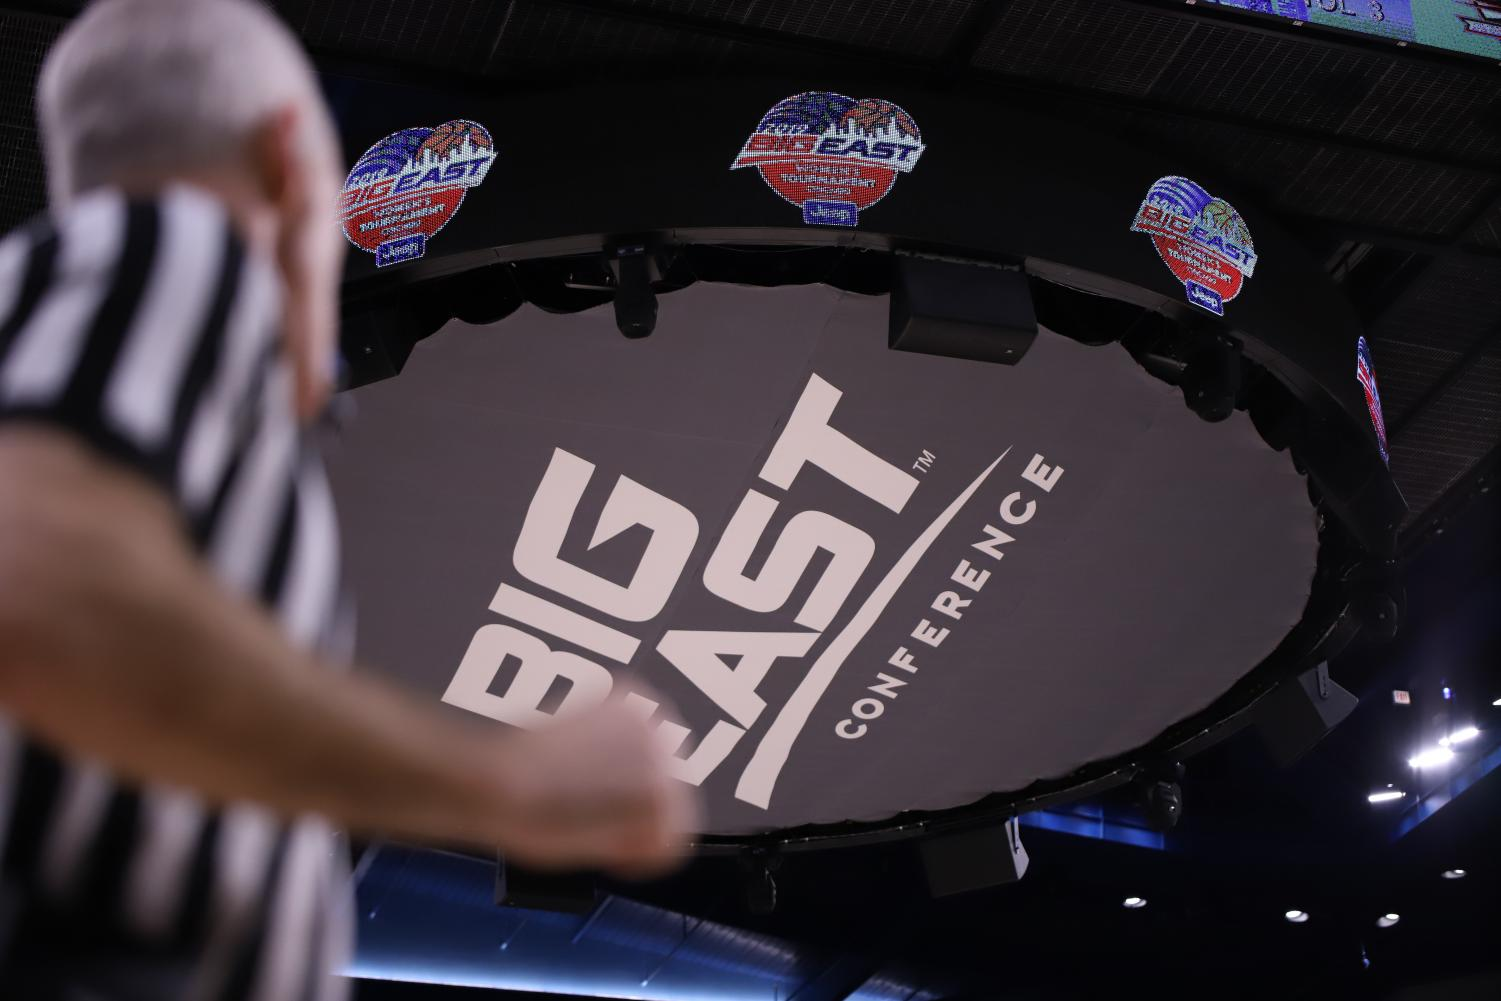 Big East conference logo displayed in place of the DePaul Athletics logo underneath the jumbotron for the Big East Championship at Wintrust Arena. Alexa Sandler | The DePaulia